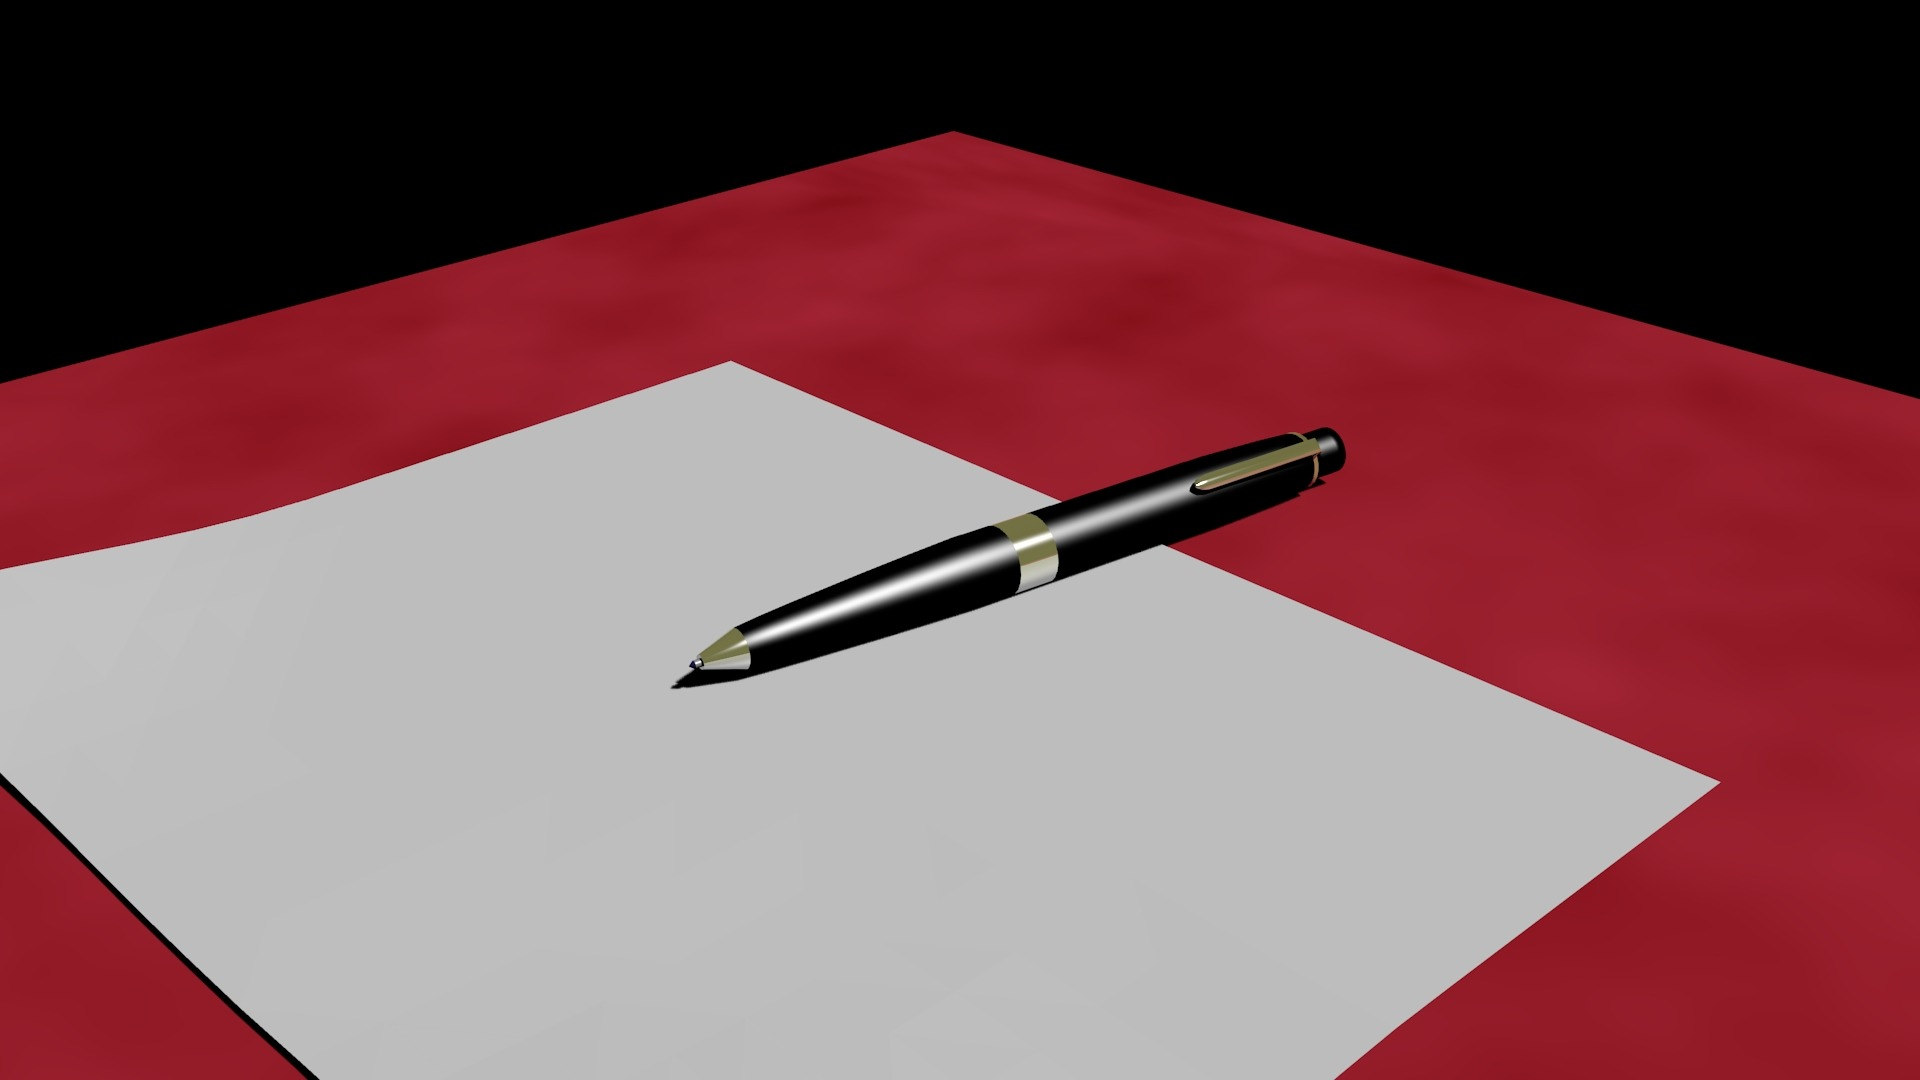 Content - Image of a blank piec of paper and pen on top of a red table.